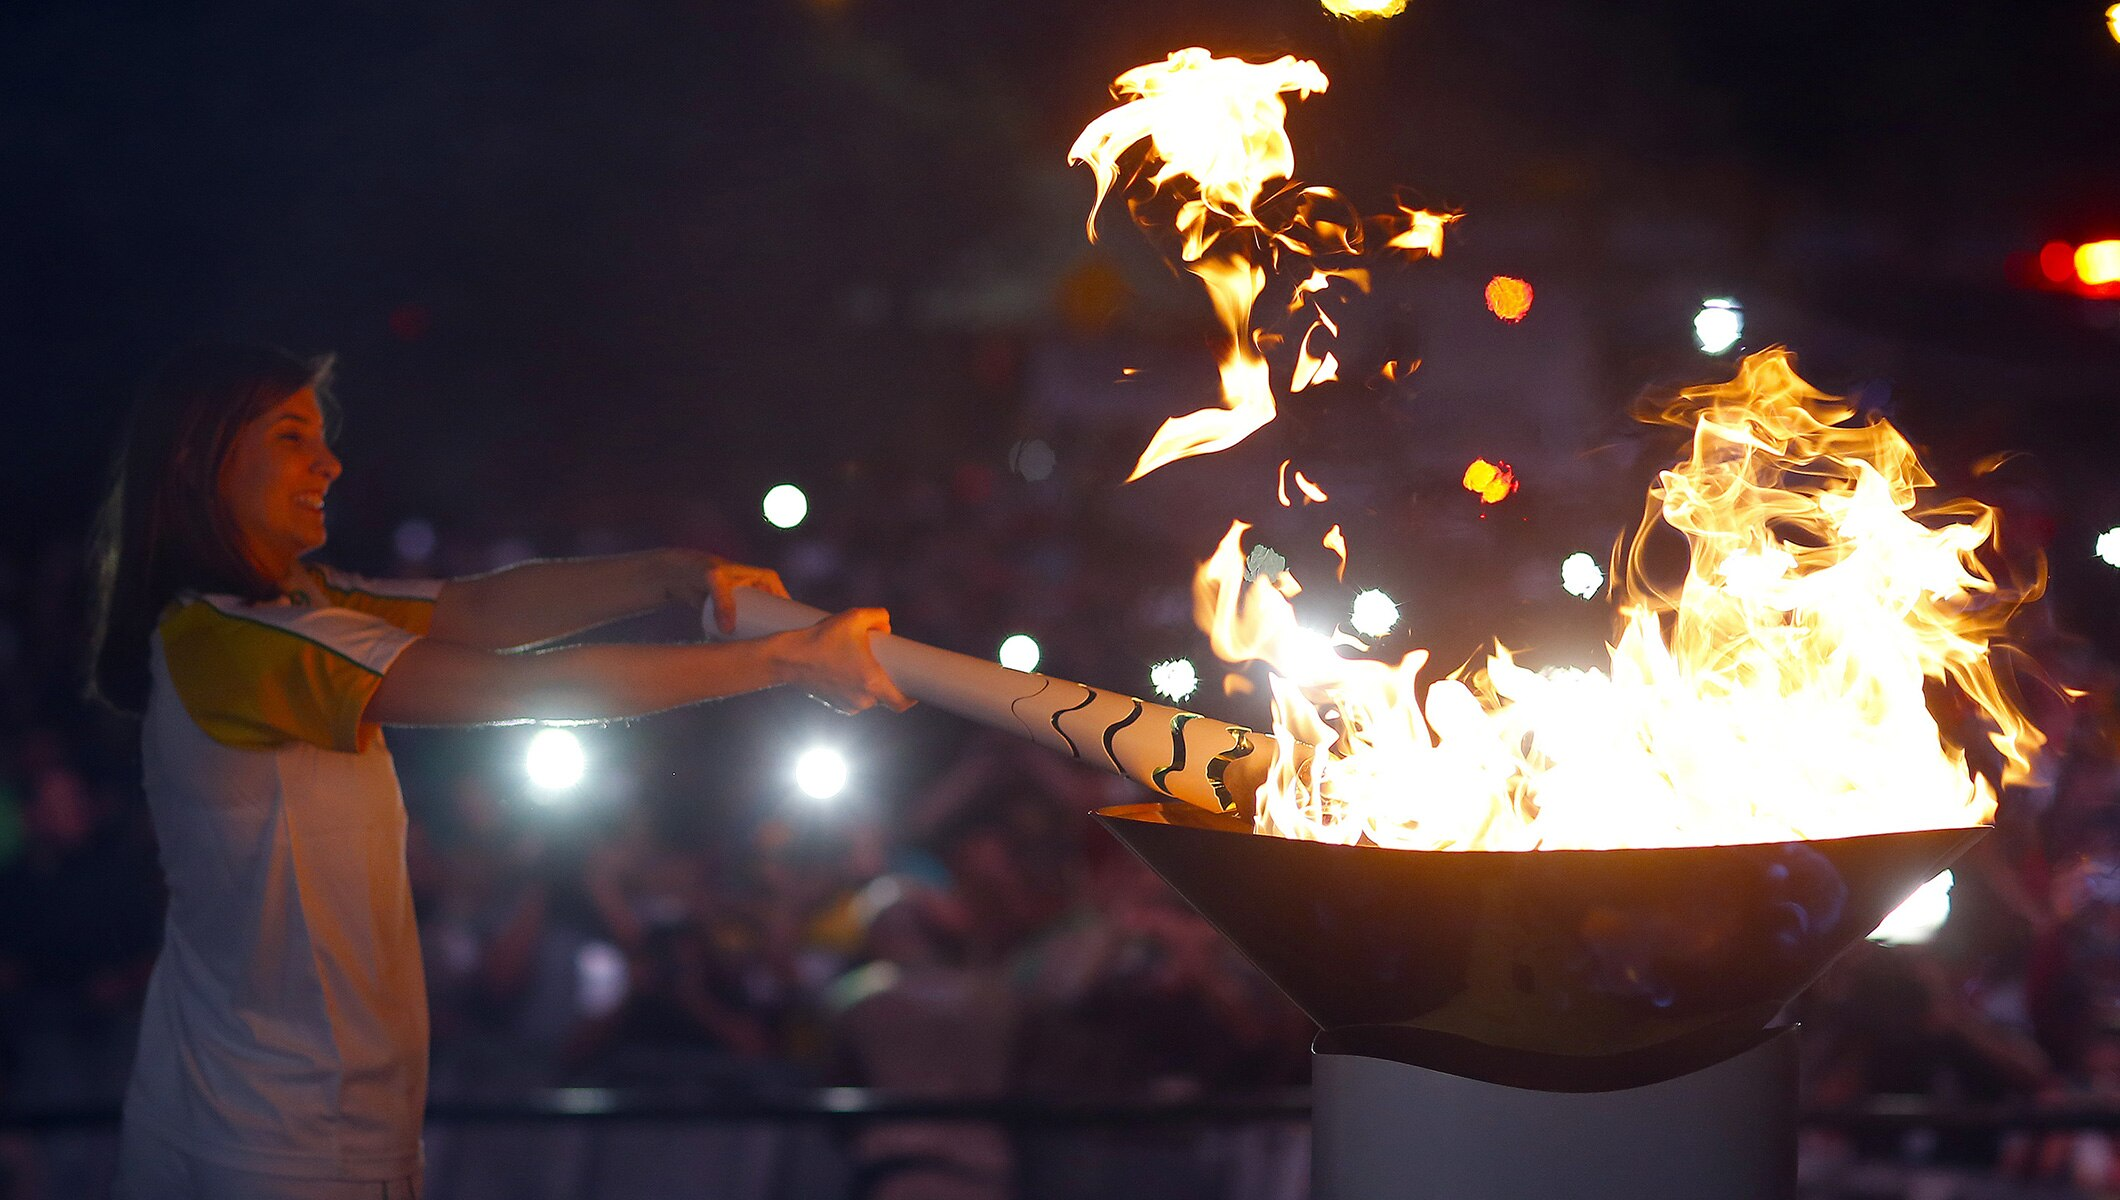 Rio 2016 Olympic Torch Relay - Day 58